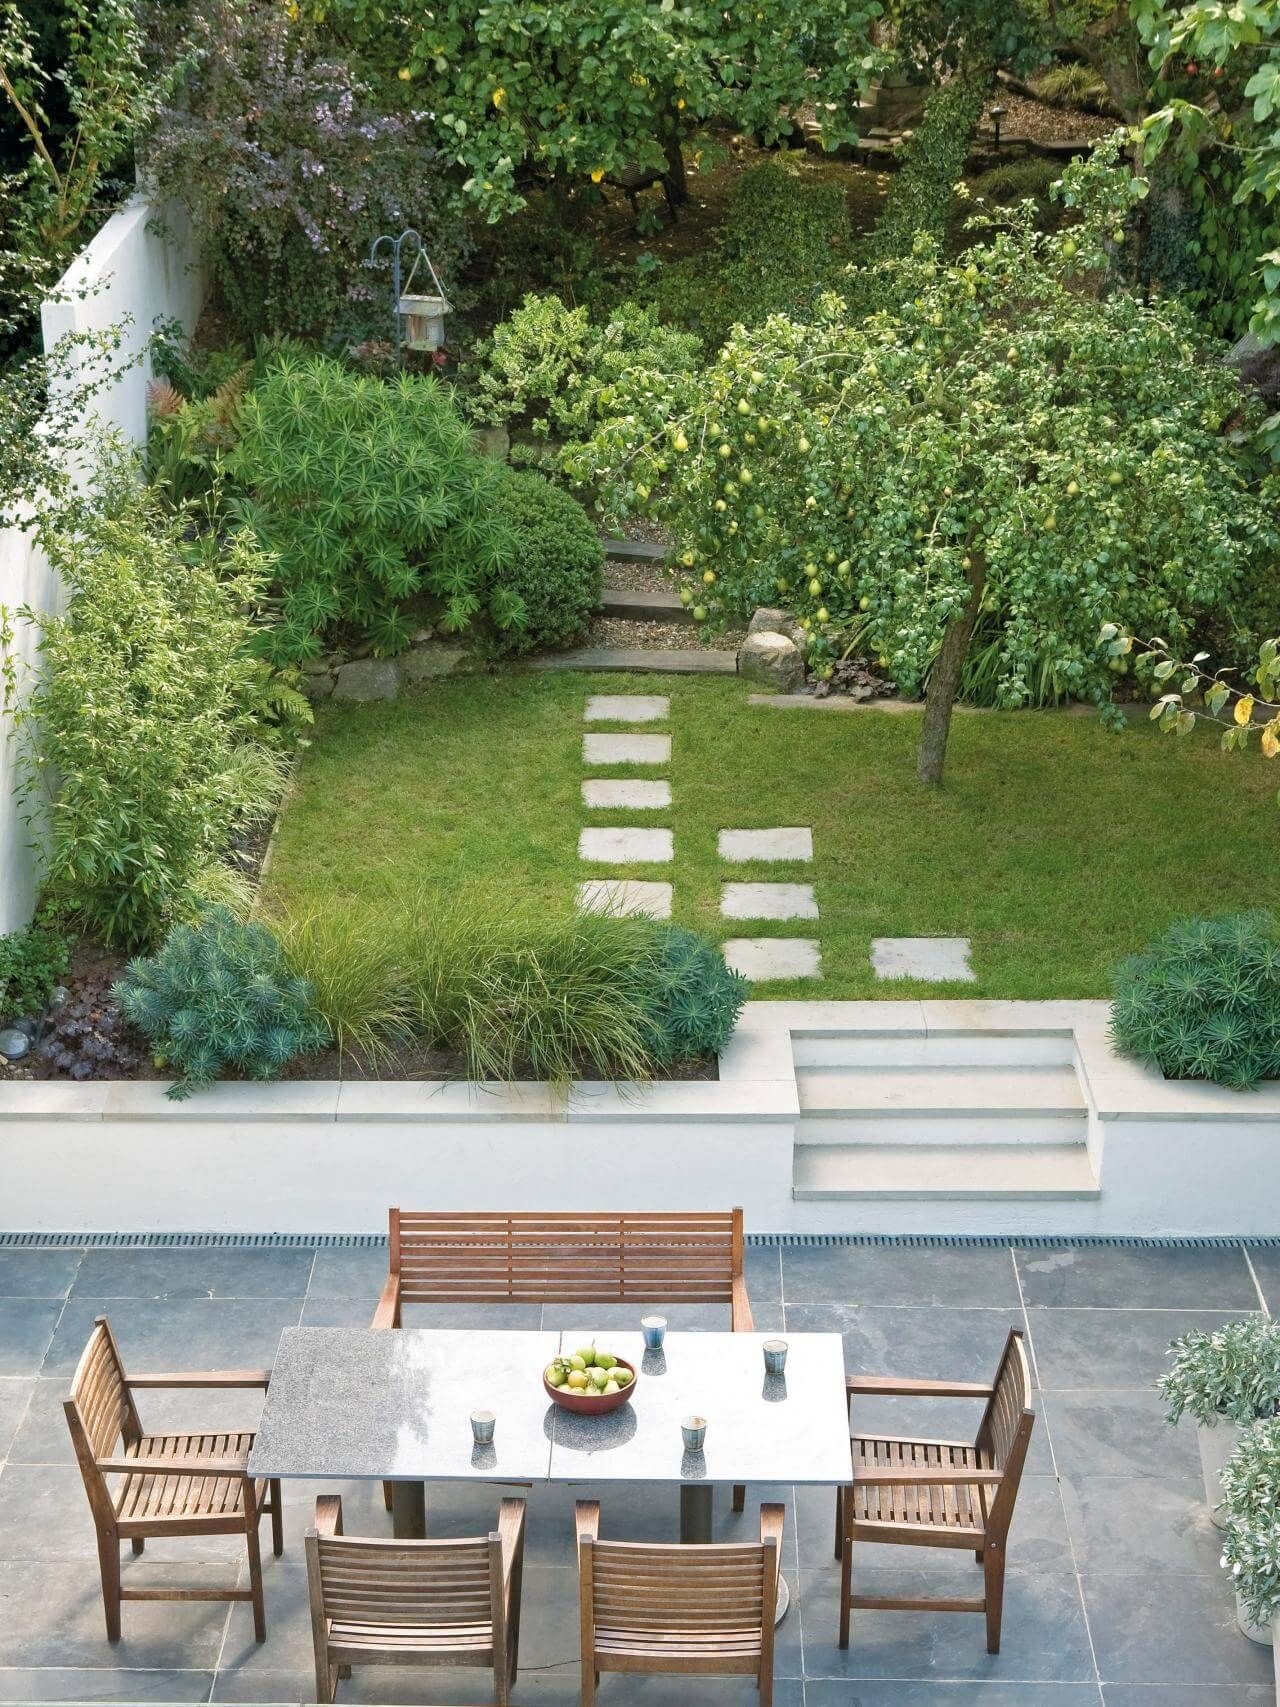 41 Backyard Design Ideas For Small Yards Backyard Gardens and Yards